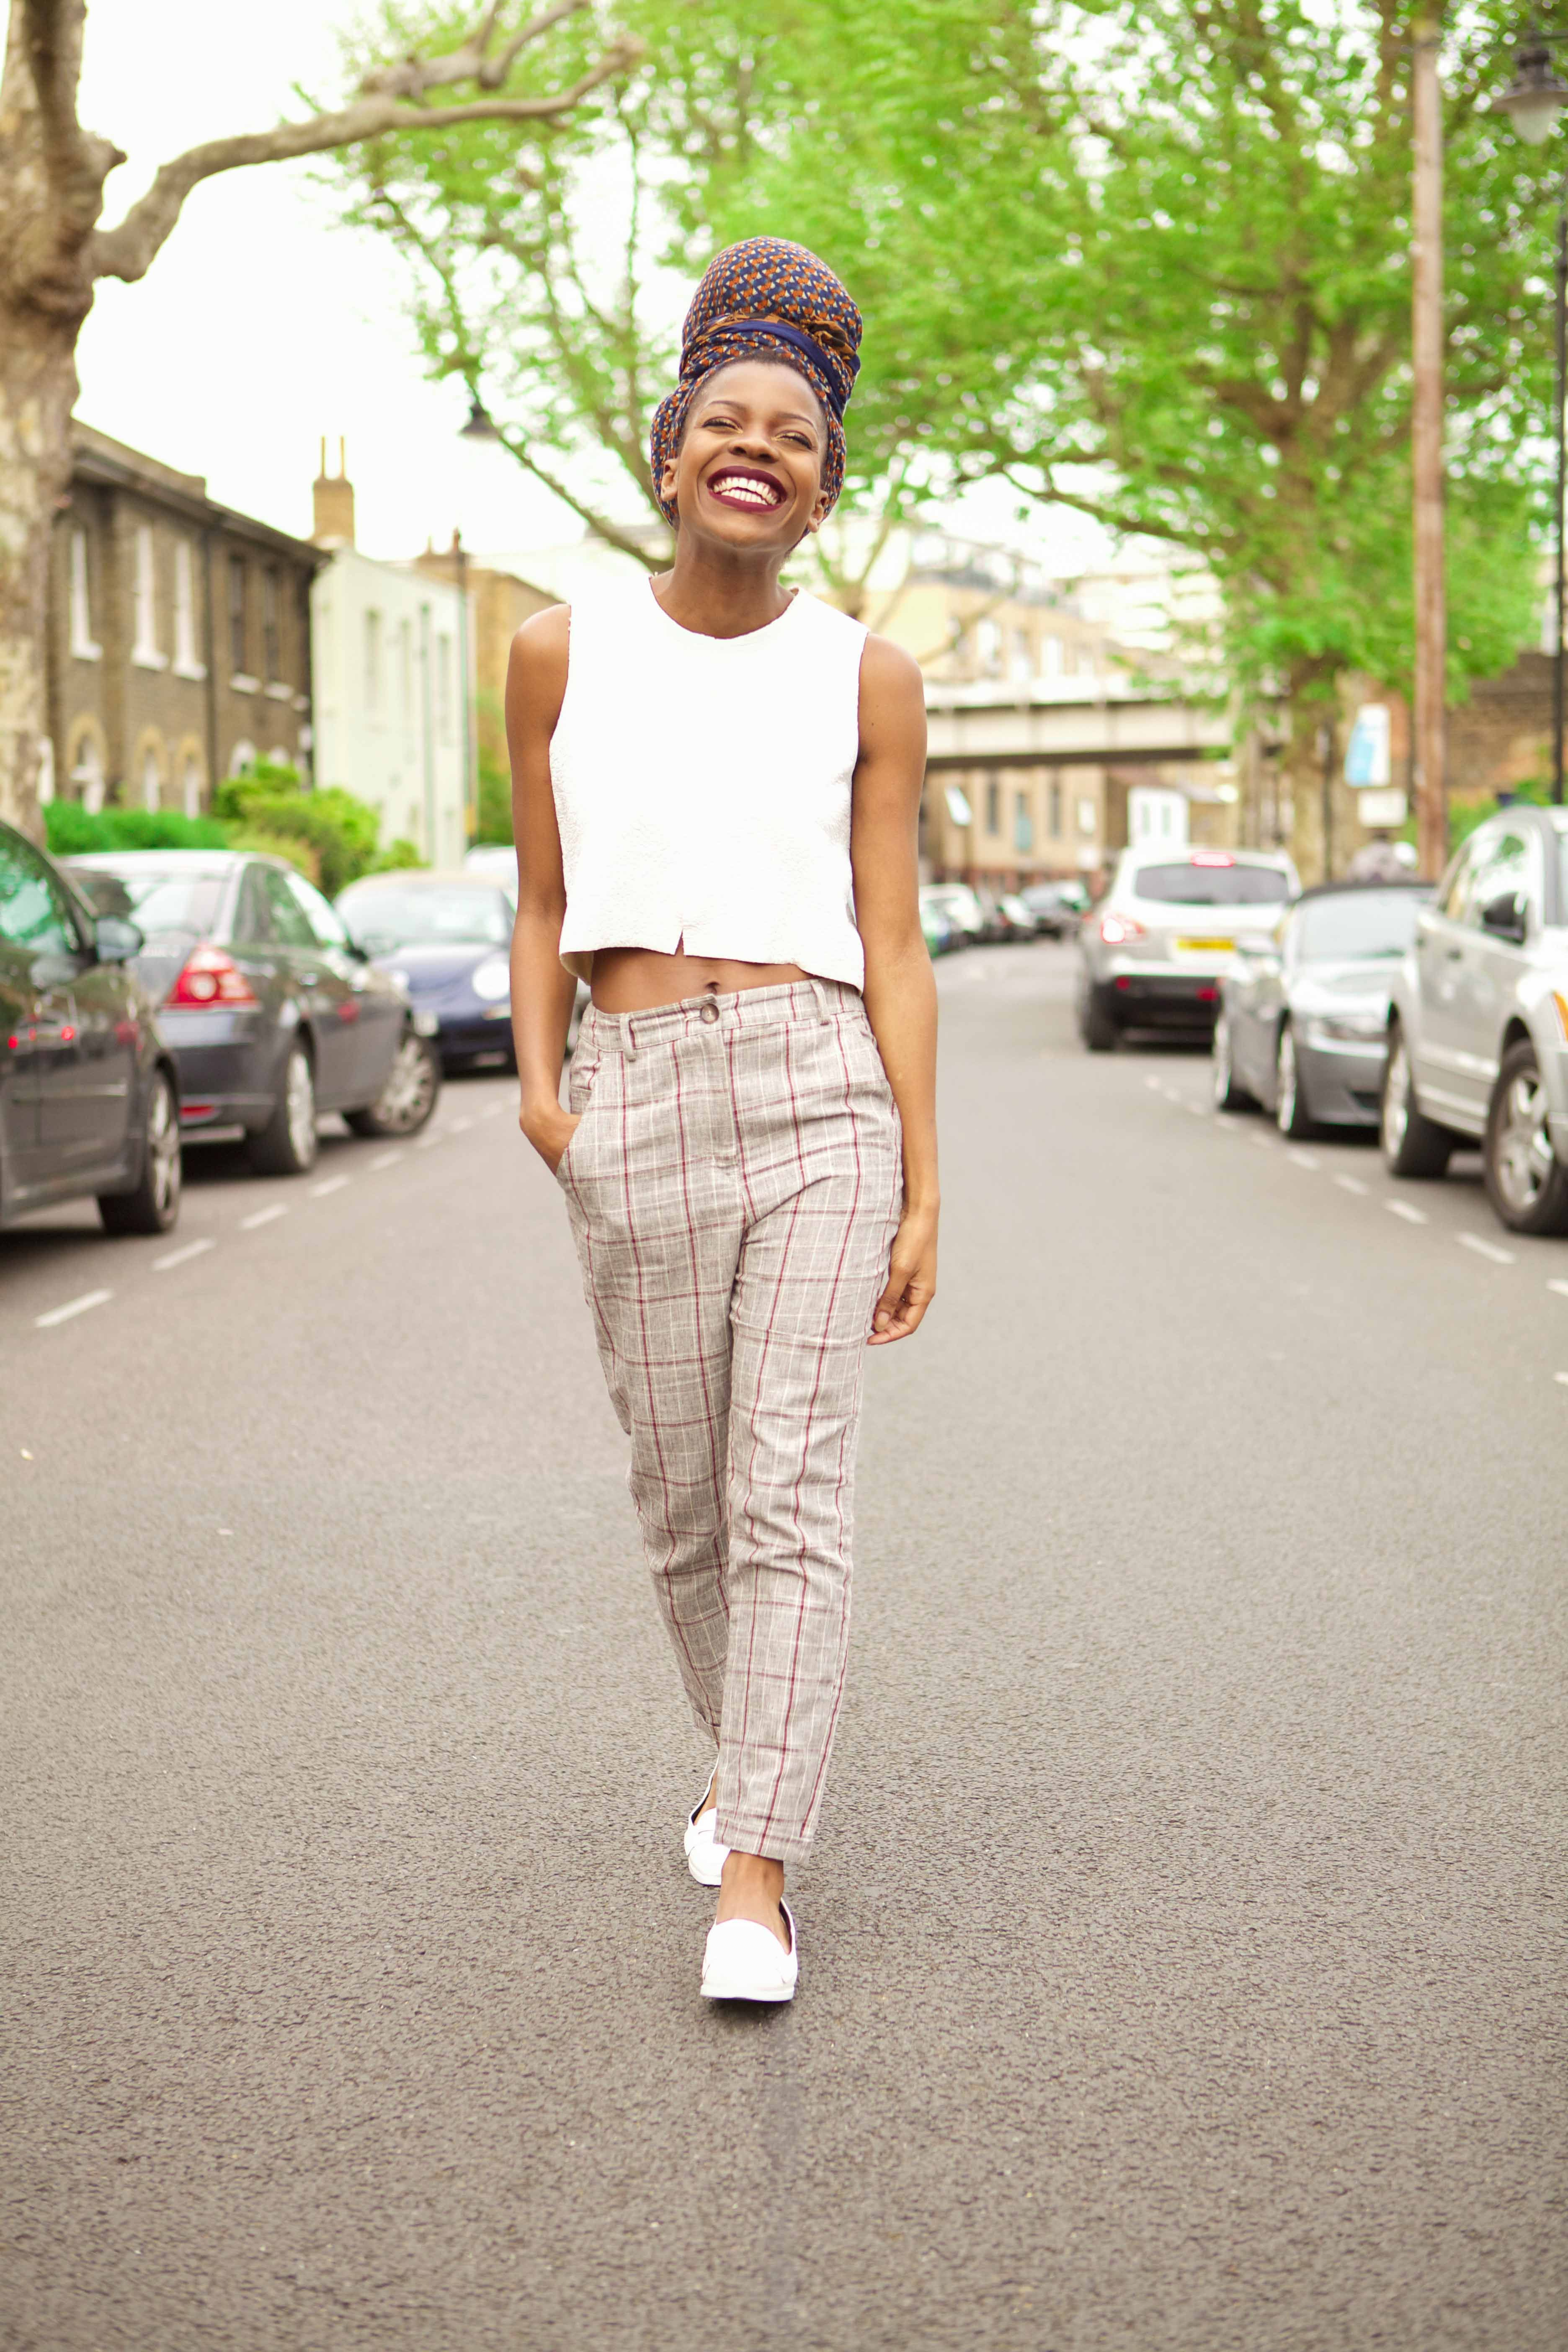 zara crop top, asos check trousers, high waist trousers, river island shoes, pointy flats, i go by frankie, freddie tietcheu, she unleashed, personal stylist london, confidence coach